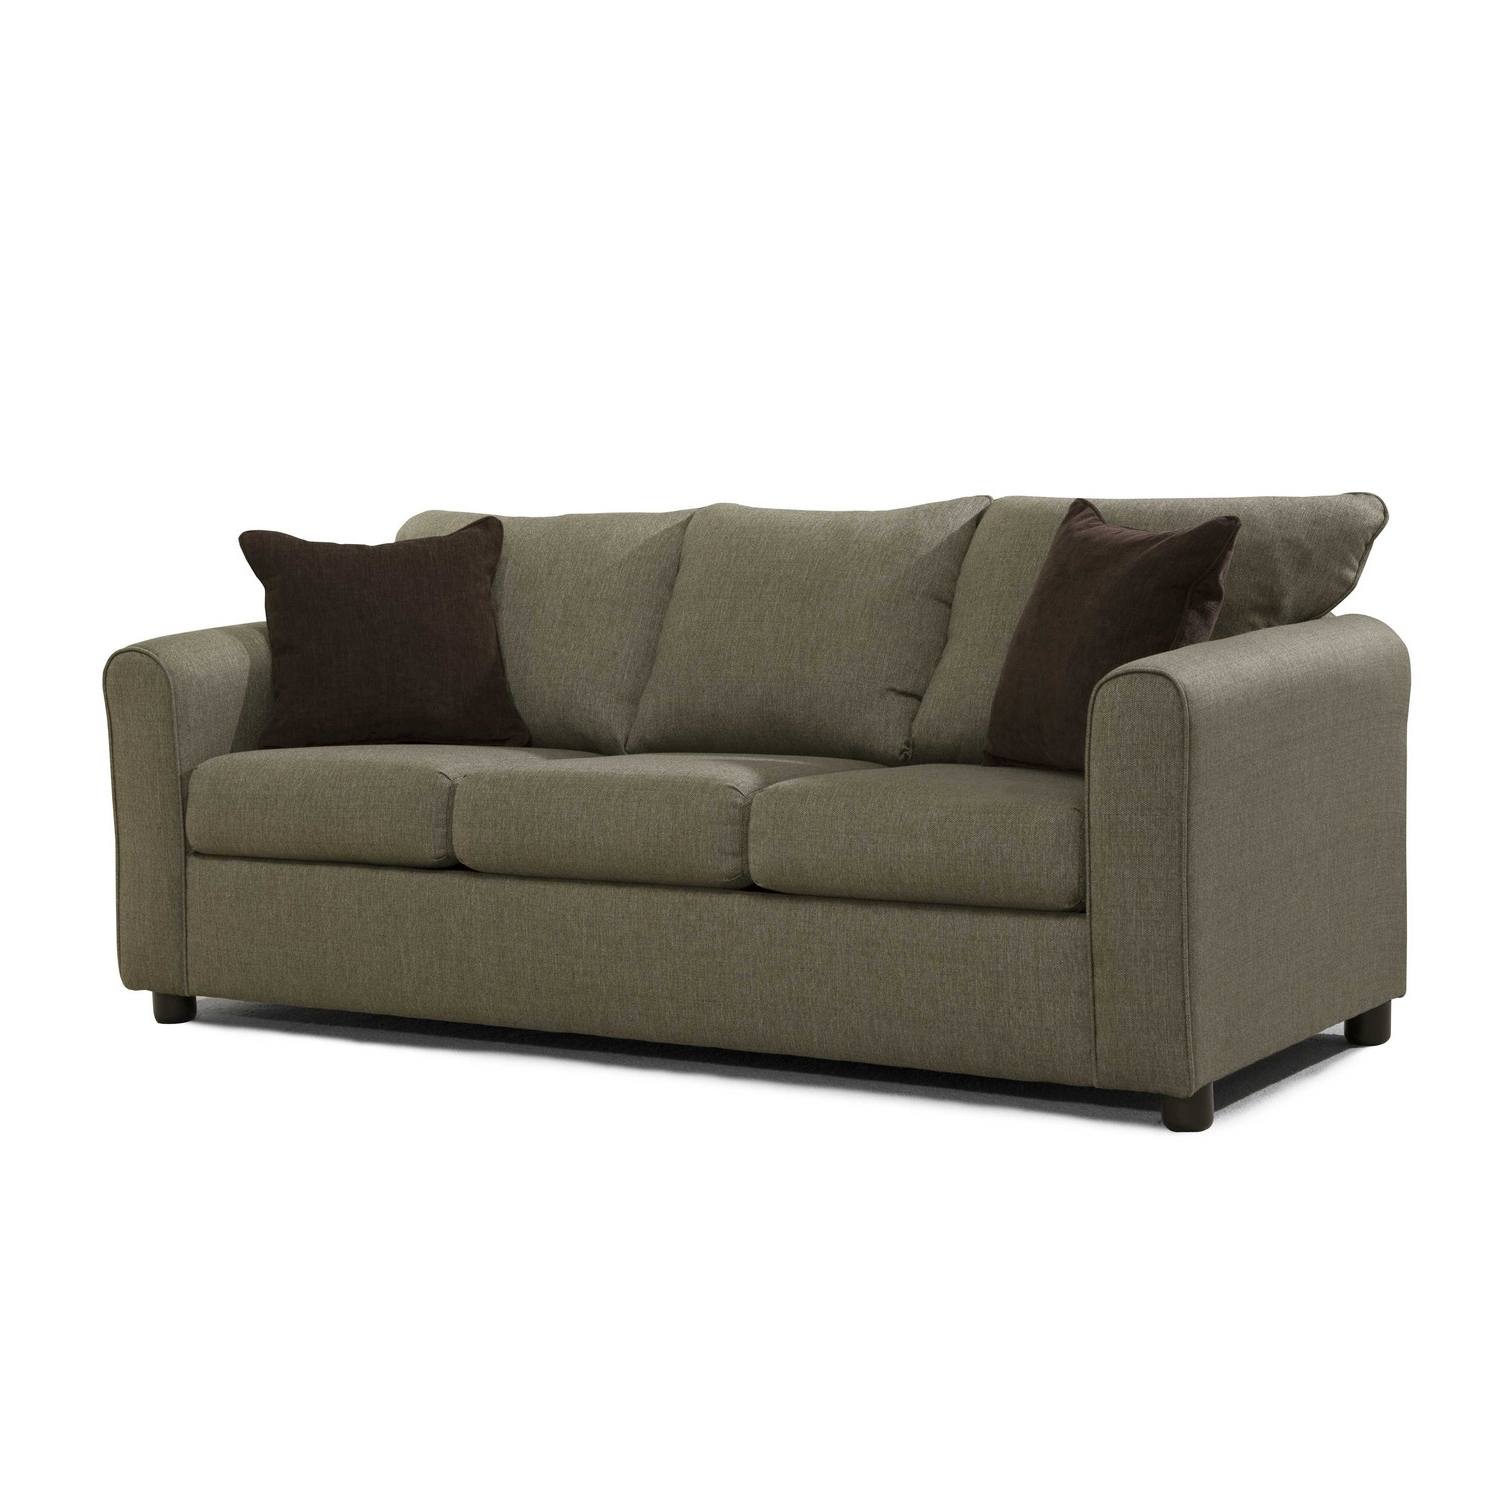 Couch Walmart (Gallery 18 of 20)